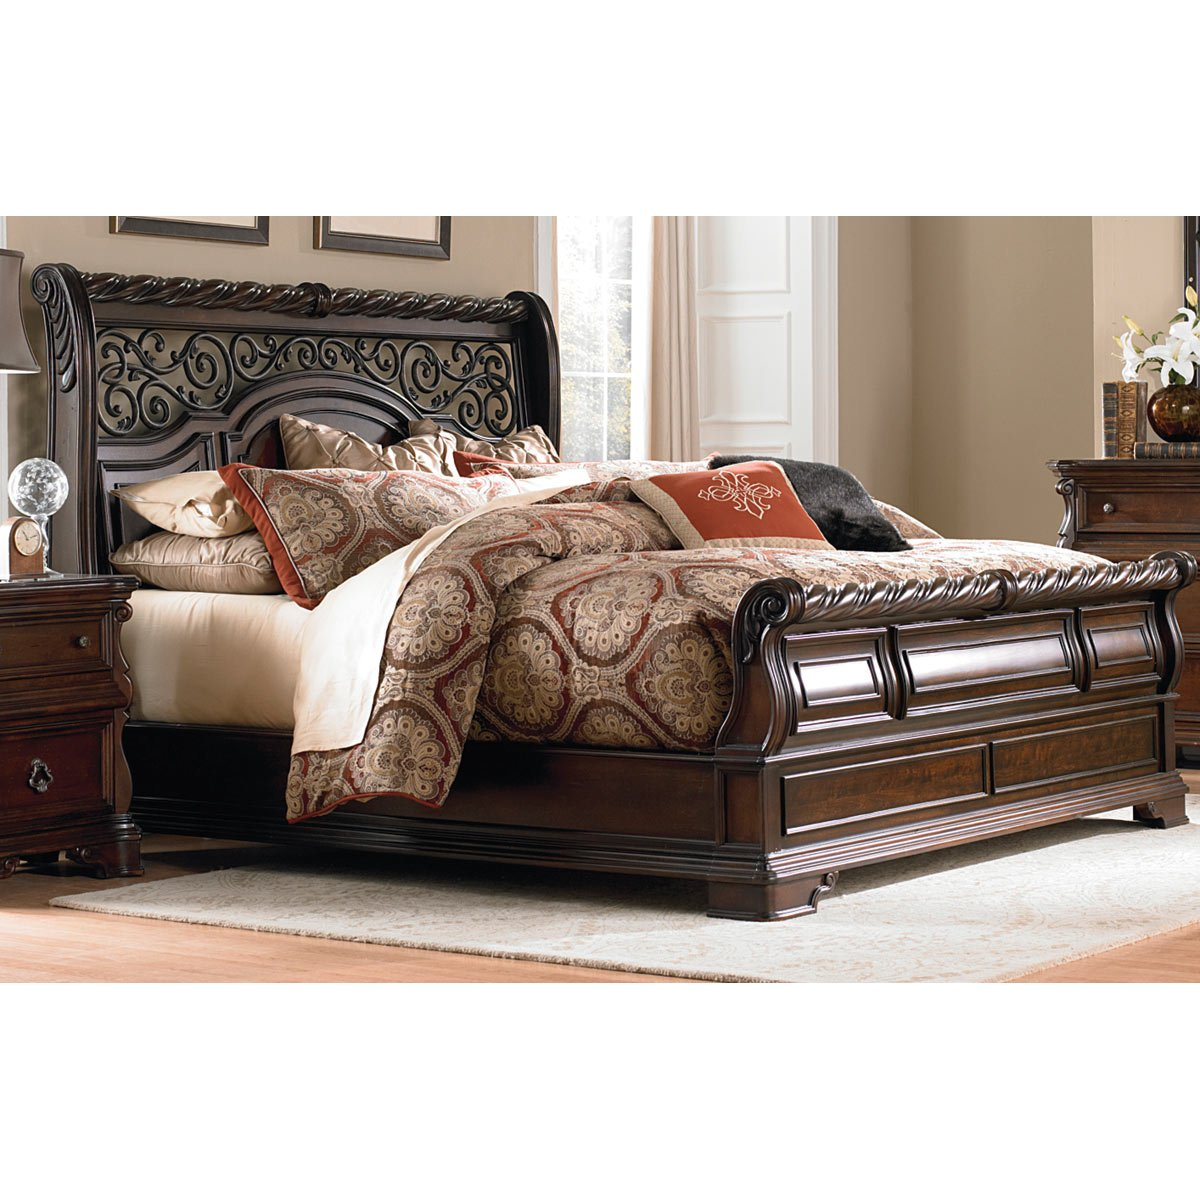 Furniture Bedroom Beds Queen Traditional